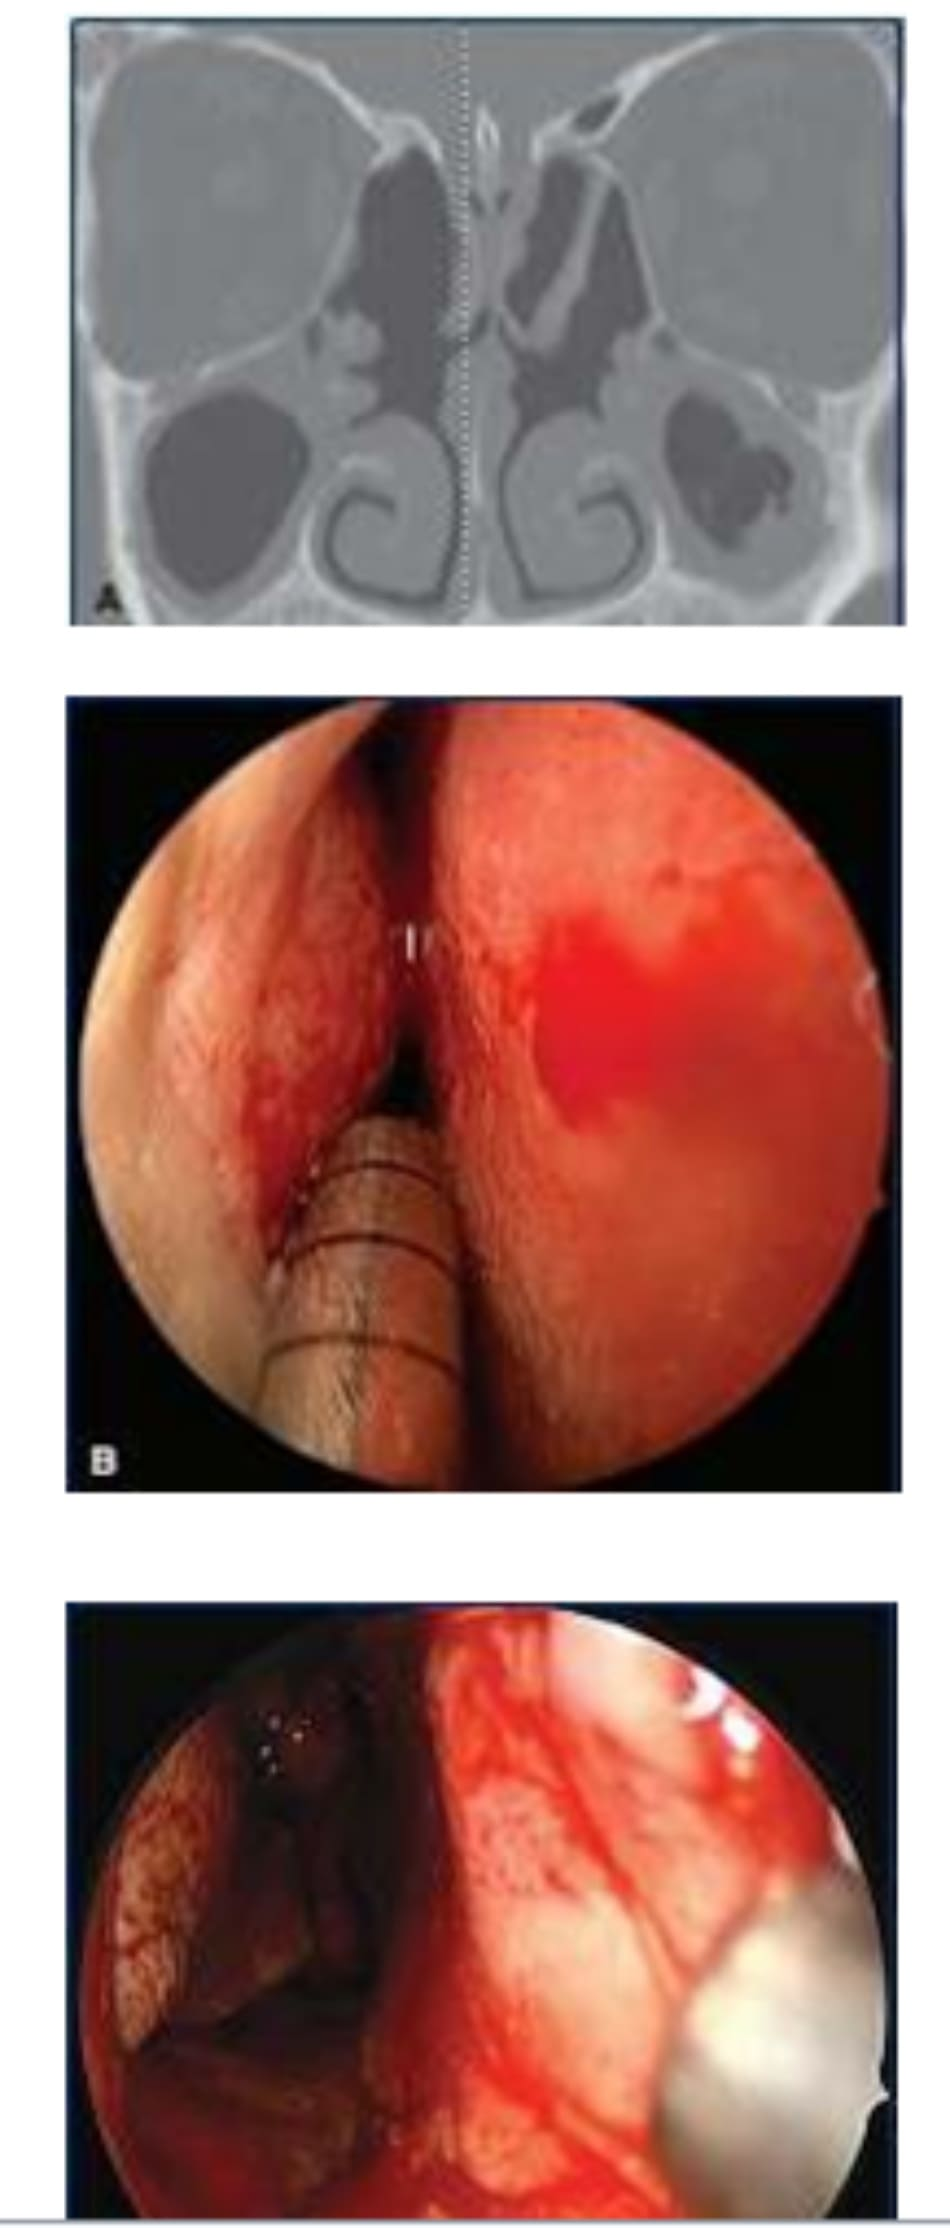 Figure 3–2. a. inferior turbi- nate hypertrophy with chronic rhinosi- nusitis, specifically the maxillary sinus (shown here), can be a source of postnasal drainage leading to cough. b. endoscopic preoperative photo of the right nasal pas- sage- way showing inferior turbi- nate hypertrophy. C. endoscopic postop- erative view of inferior turbinate submucosal reduction and lateral- ization to improve the right nasal airway, reduce nasal congestion, and decrease postnasal drainage.